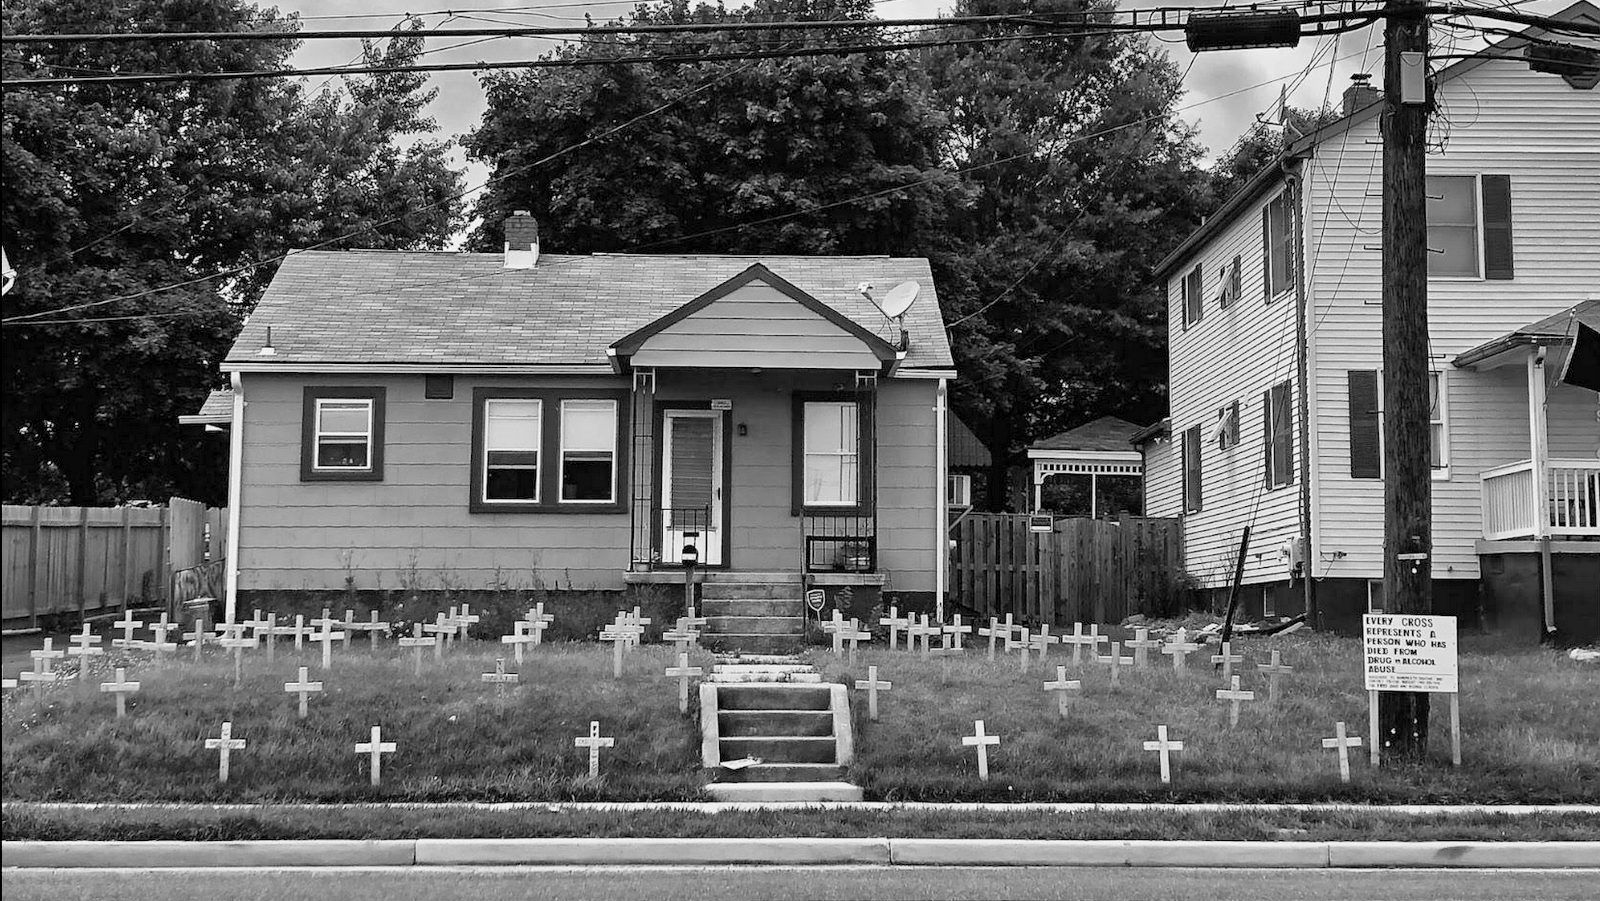 House a mile from the former Sparrows Point steel mill. 2018. (J.M. Giordano)